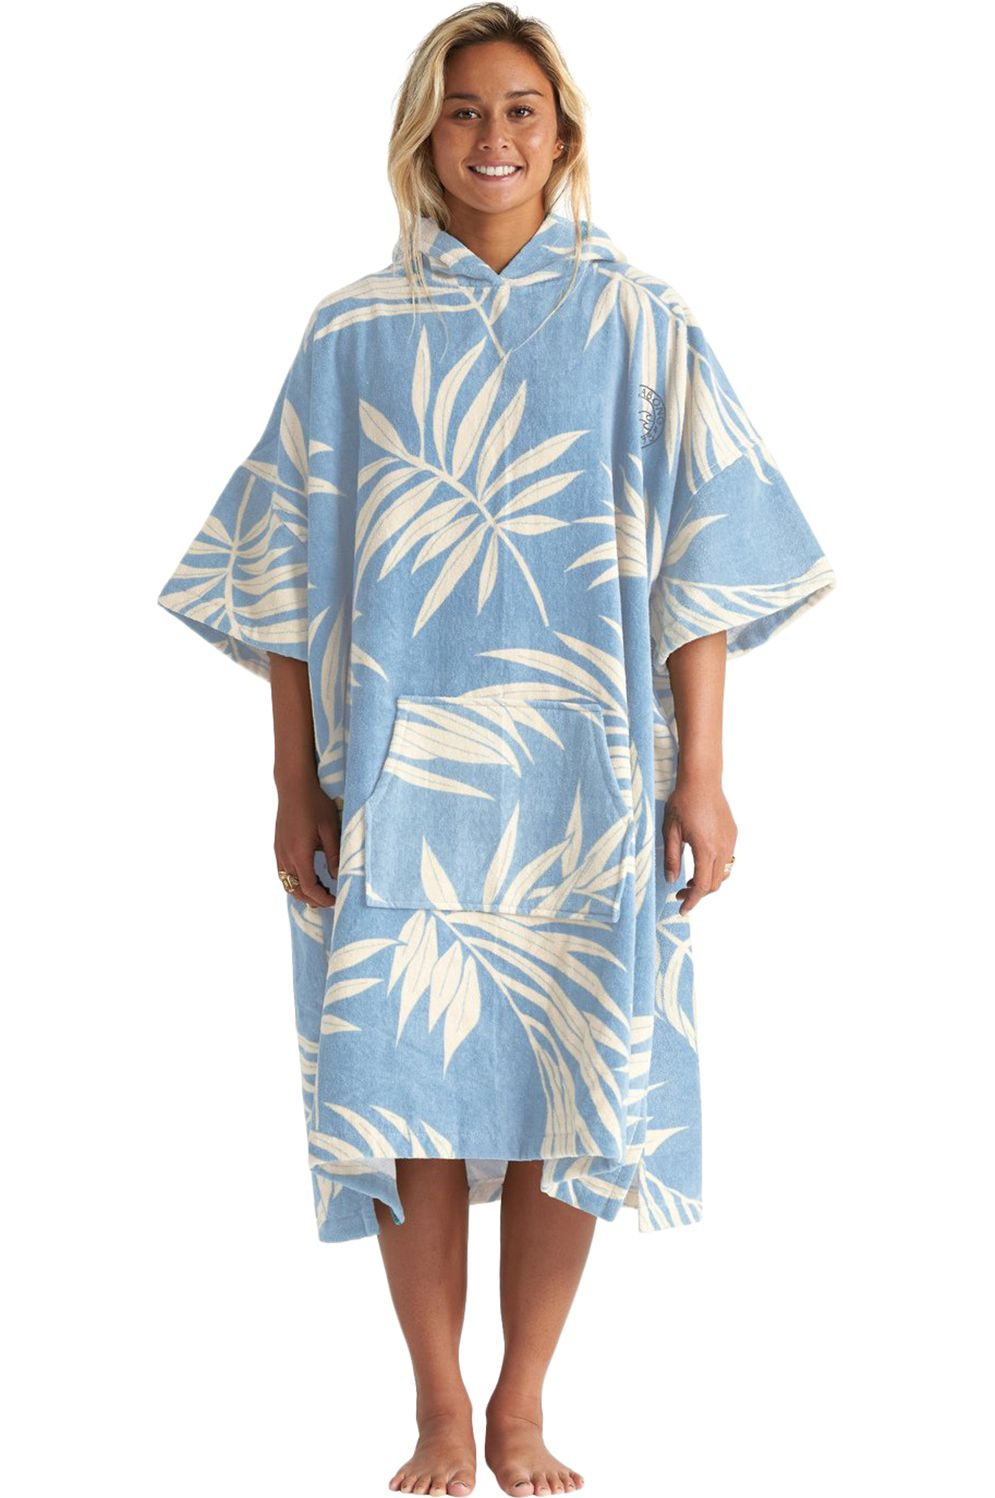 Poncho Billabong HOODED TOWEL Blue Palms